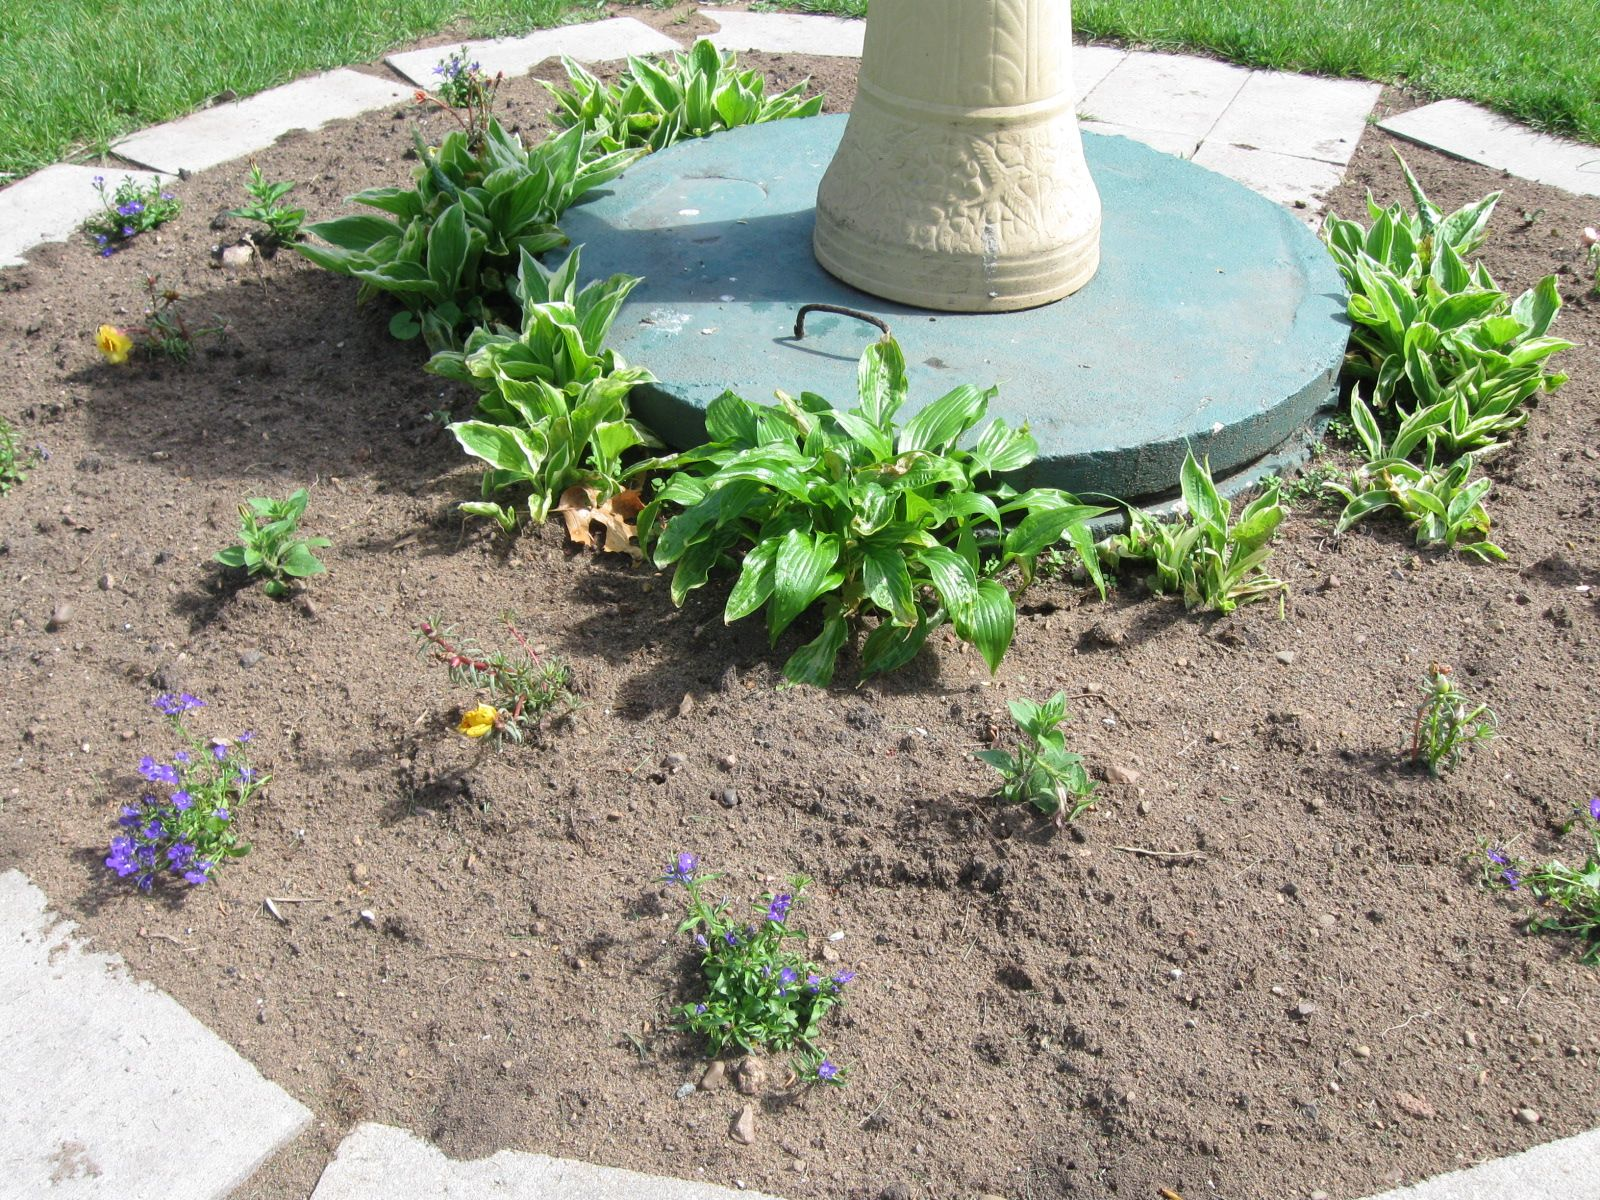 how to cover unsightly septic tank covers septic tank cover ideas pinterest septic tank covers septic tank and sprinkler - Garden Ideas To Hide Septic Tank